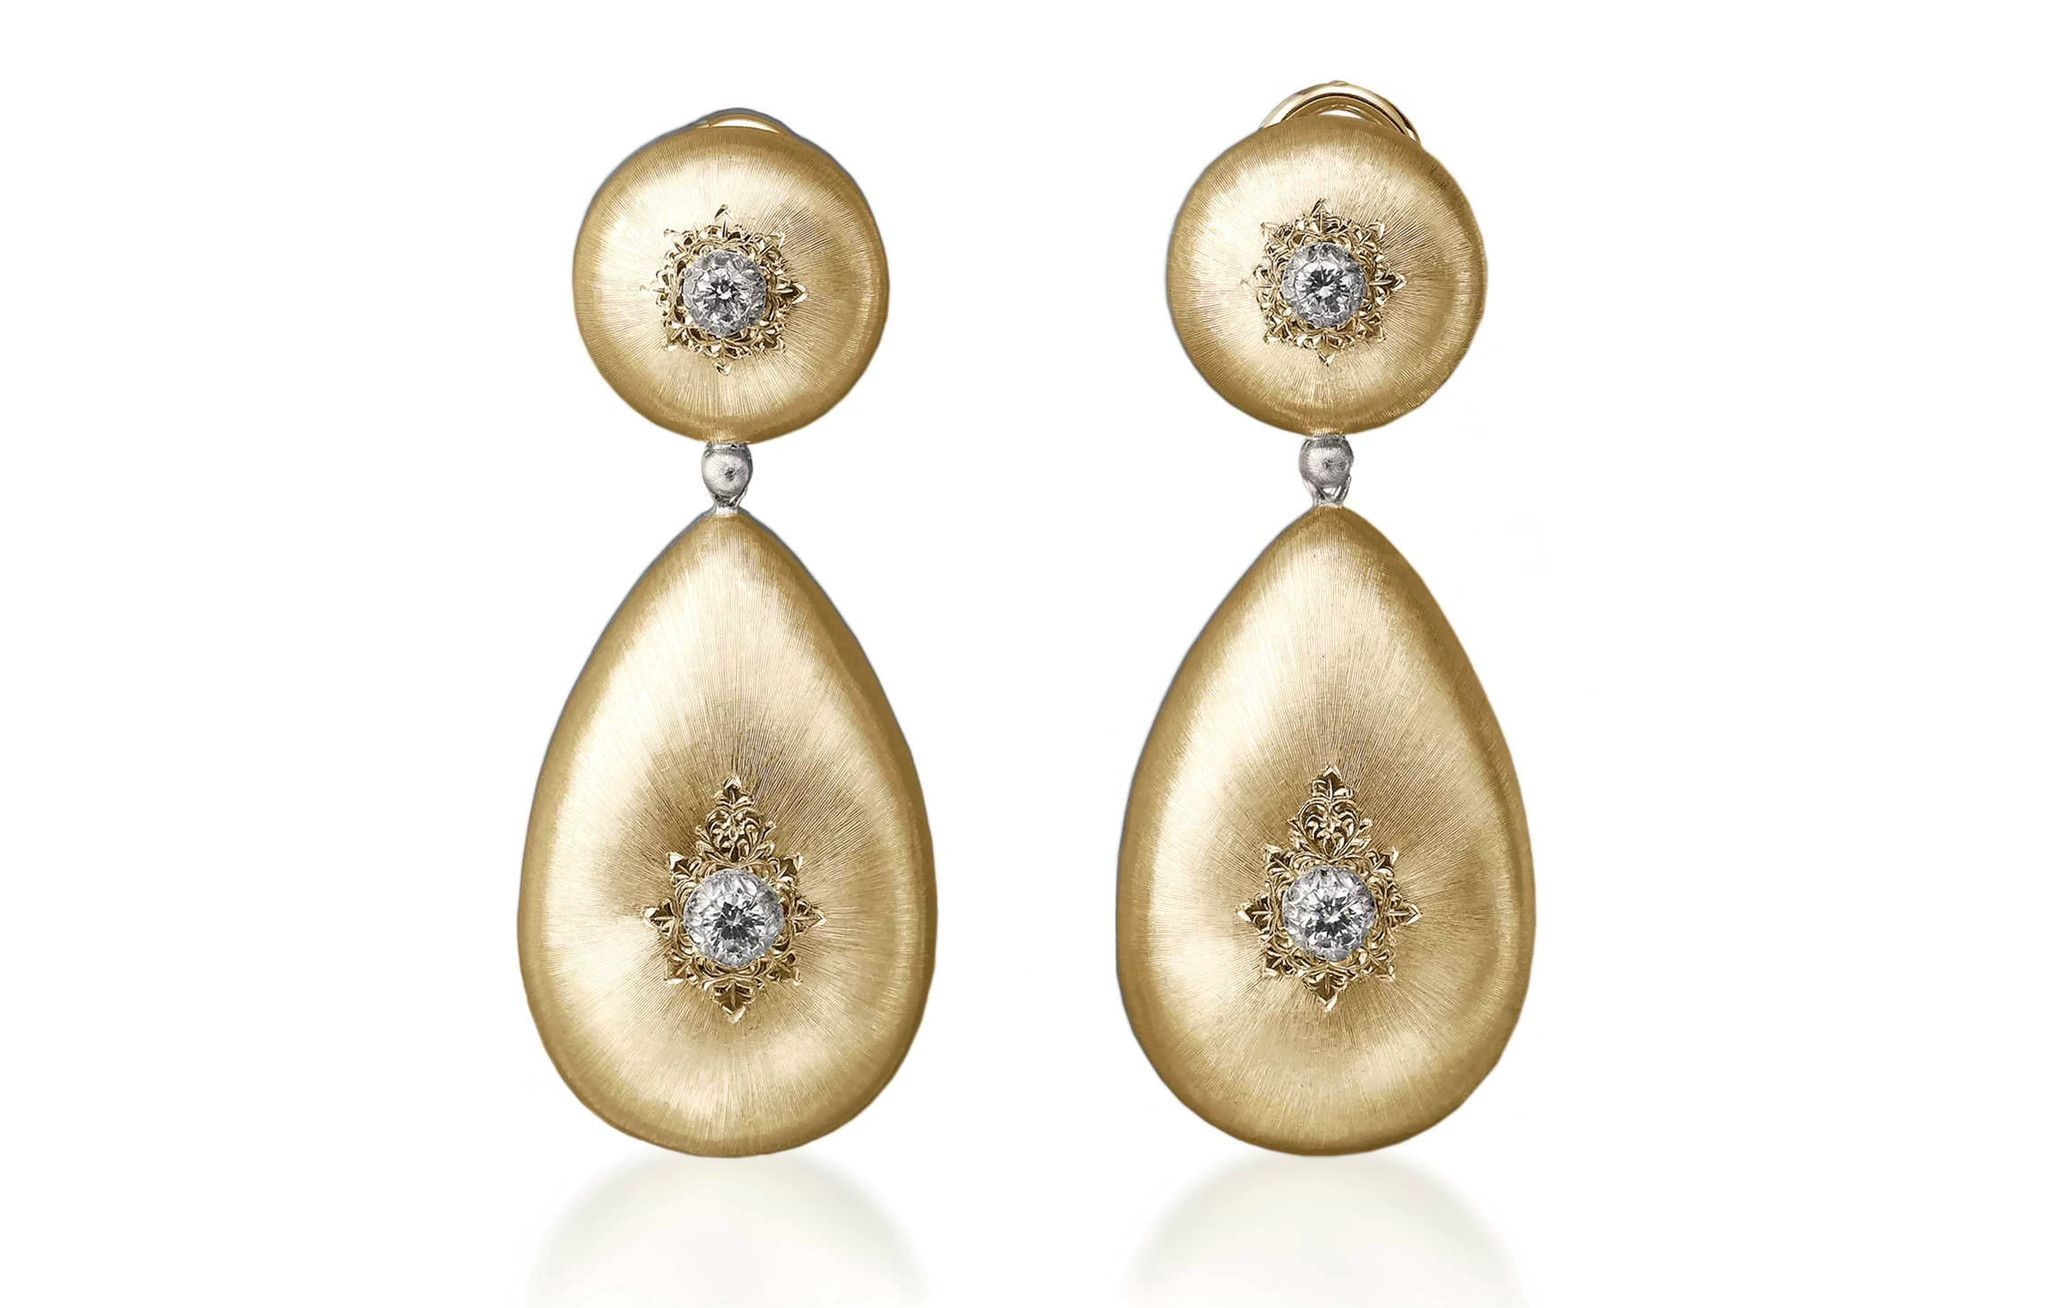 Buccellati 18k Macri Diamond Drop Earrings gSCiCat5